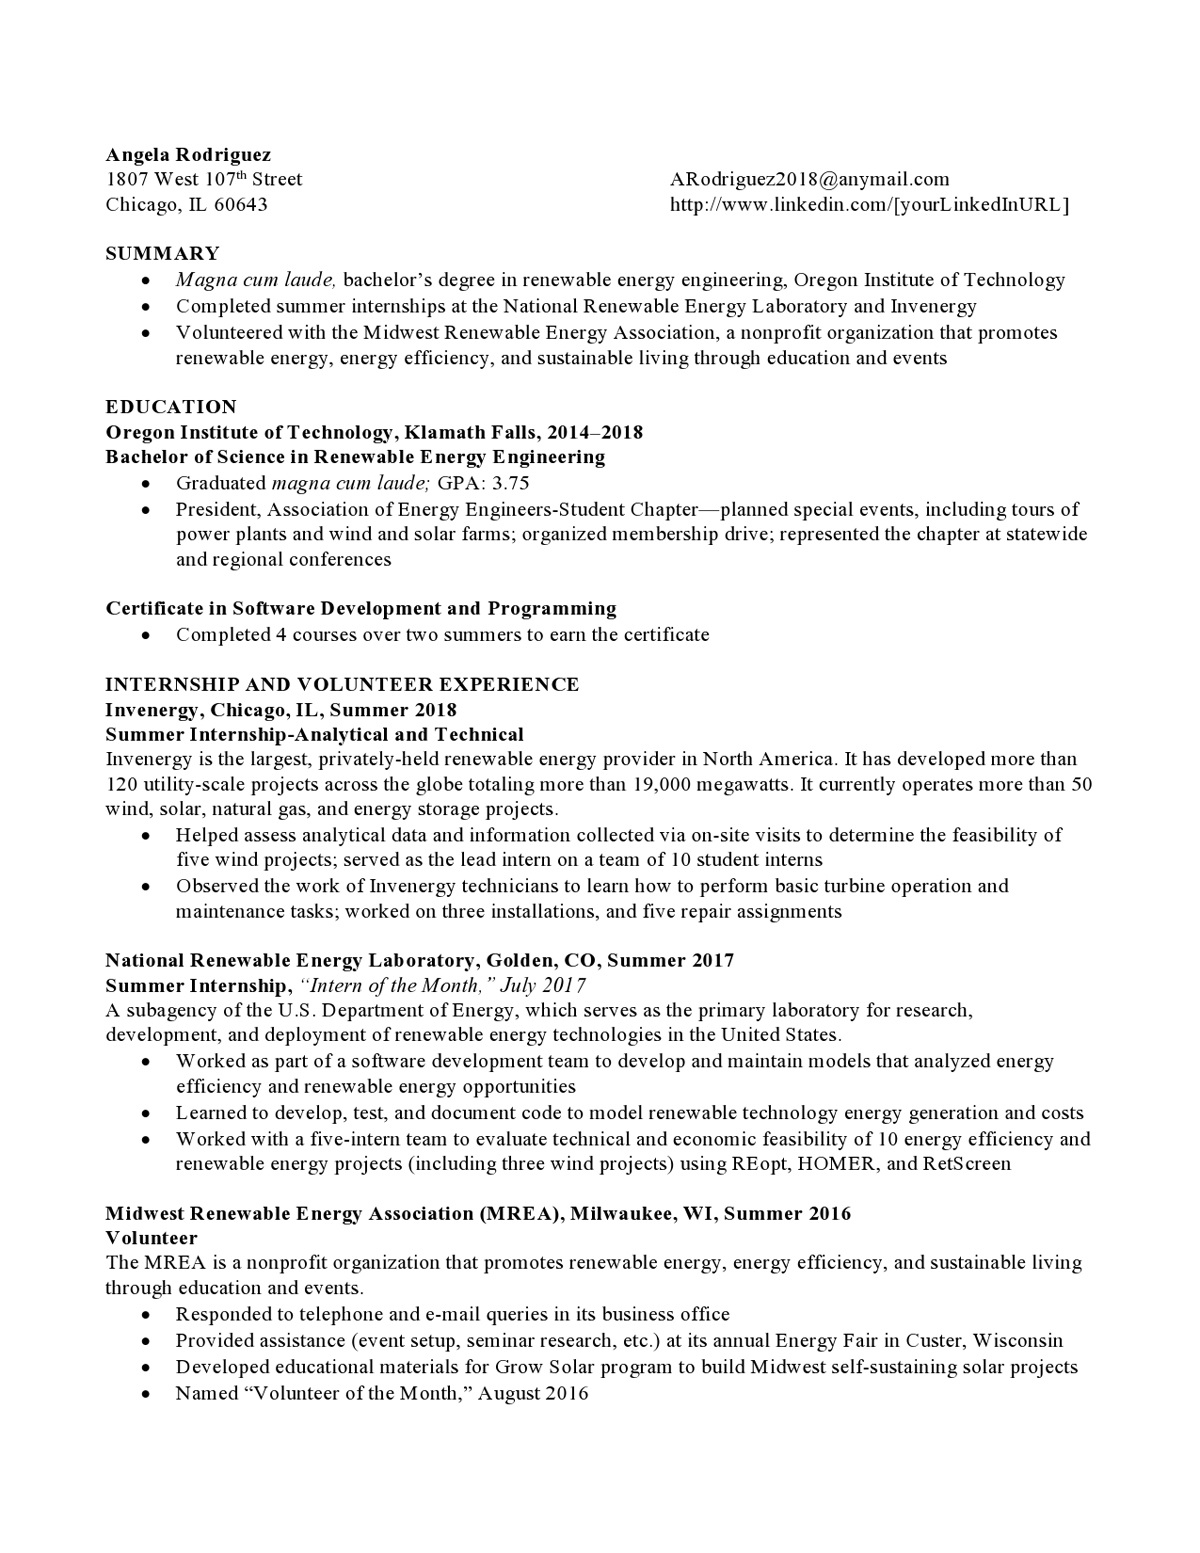 resume samples templates examples vault sample for energy engineer cresfuenergy20 Resume Sample Resume For Energy Engineer